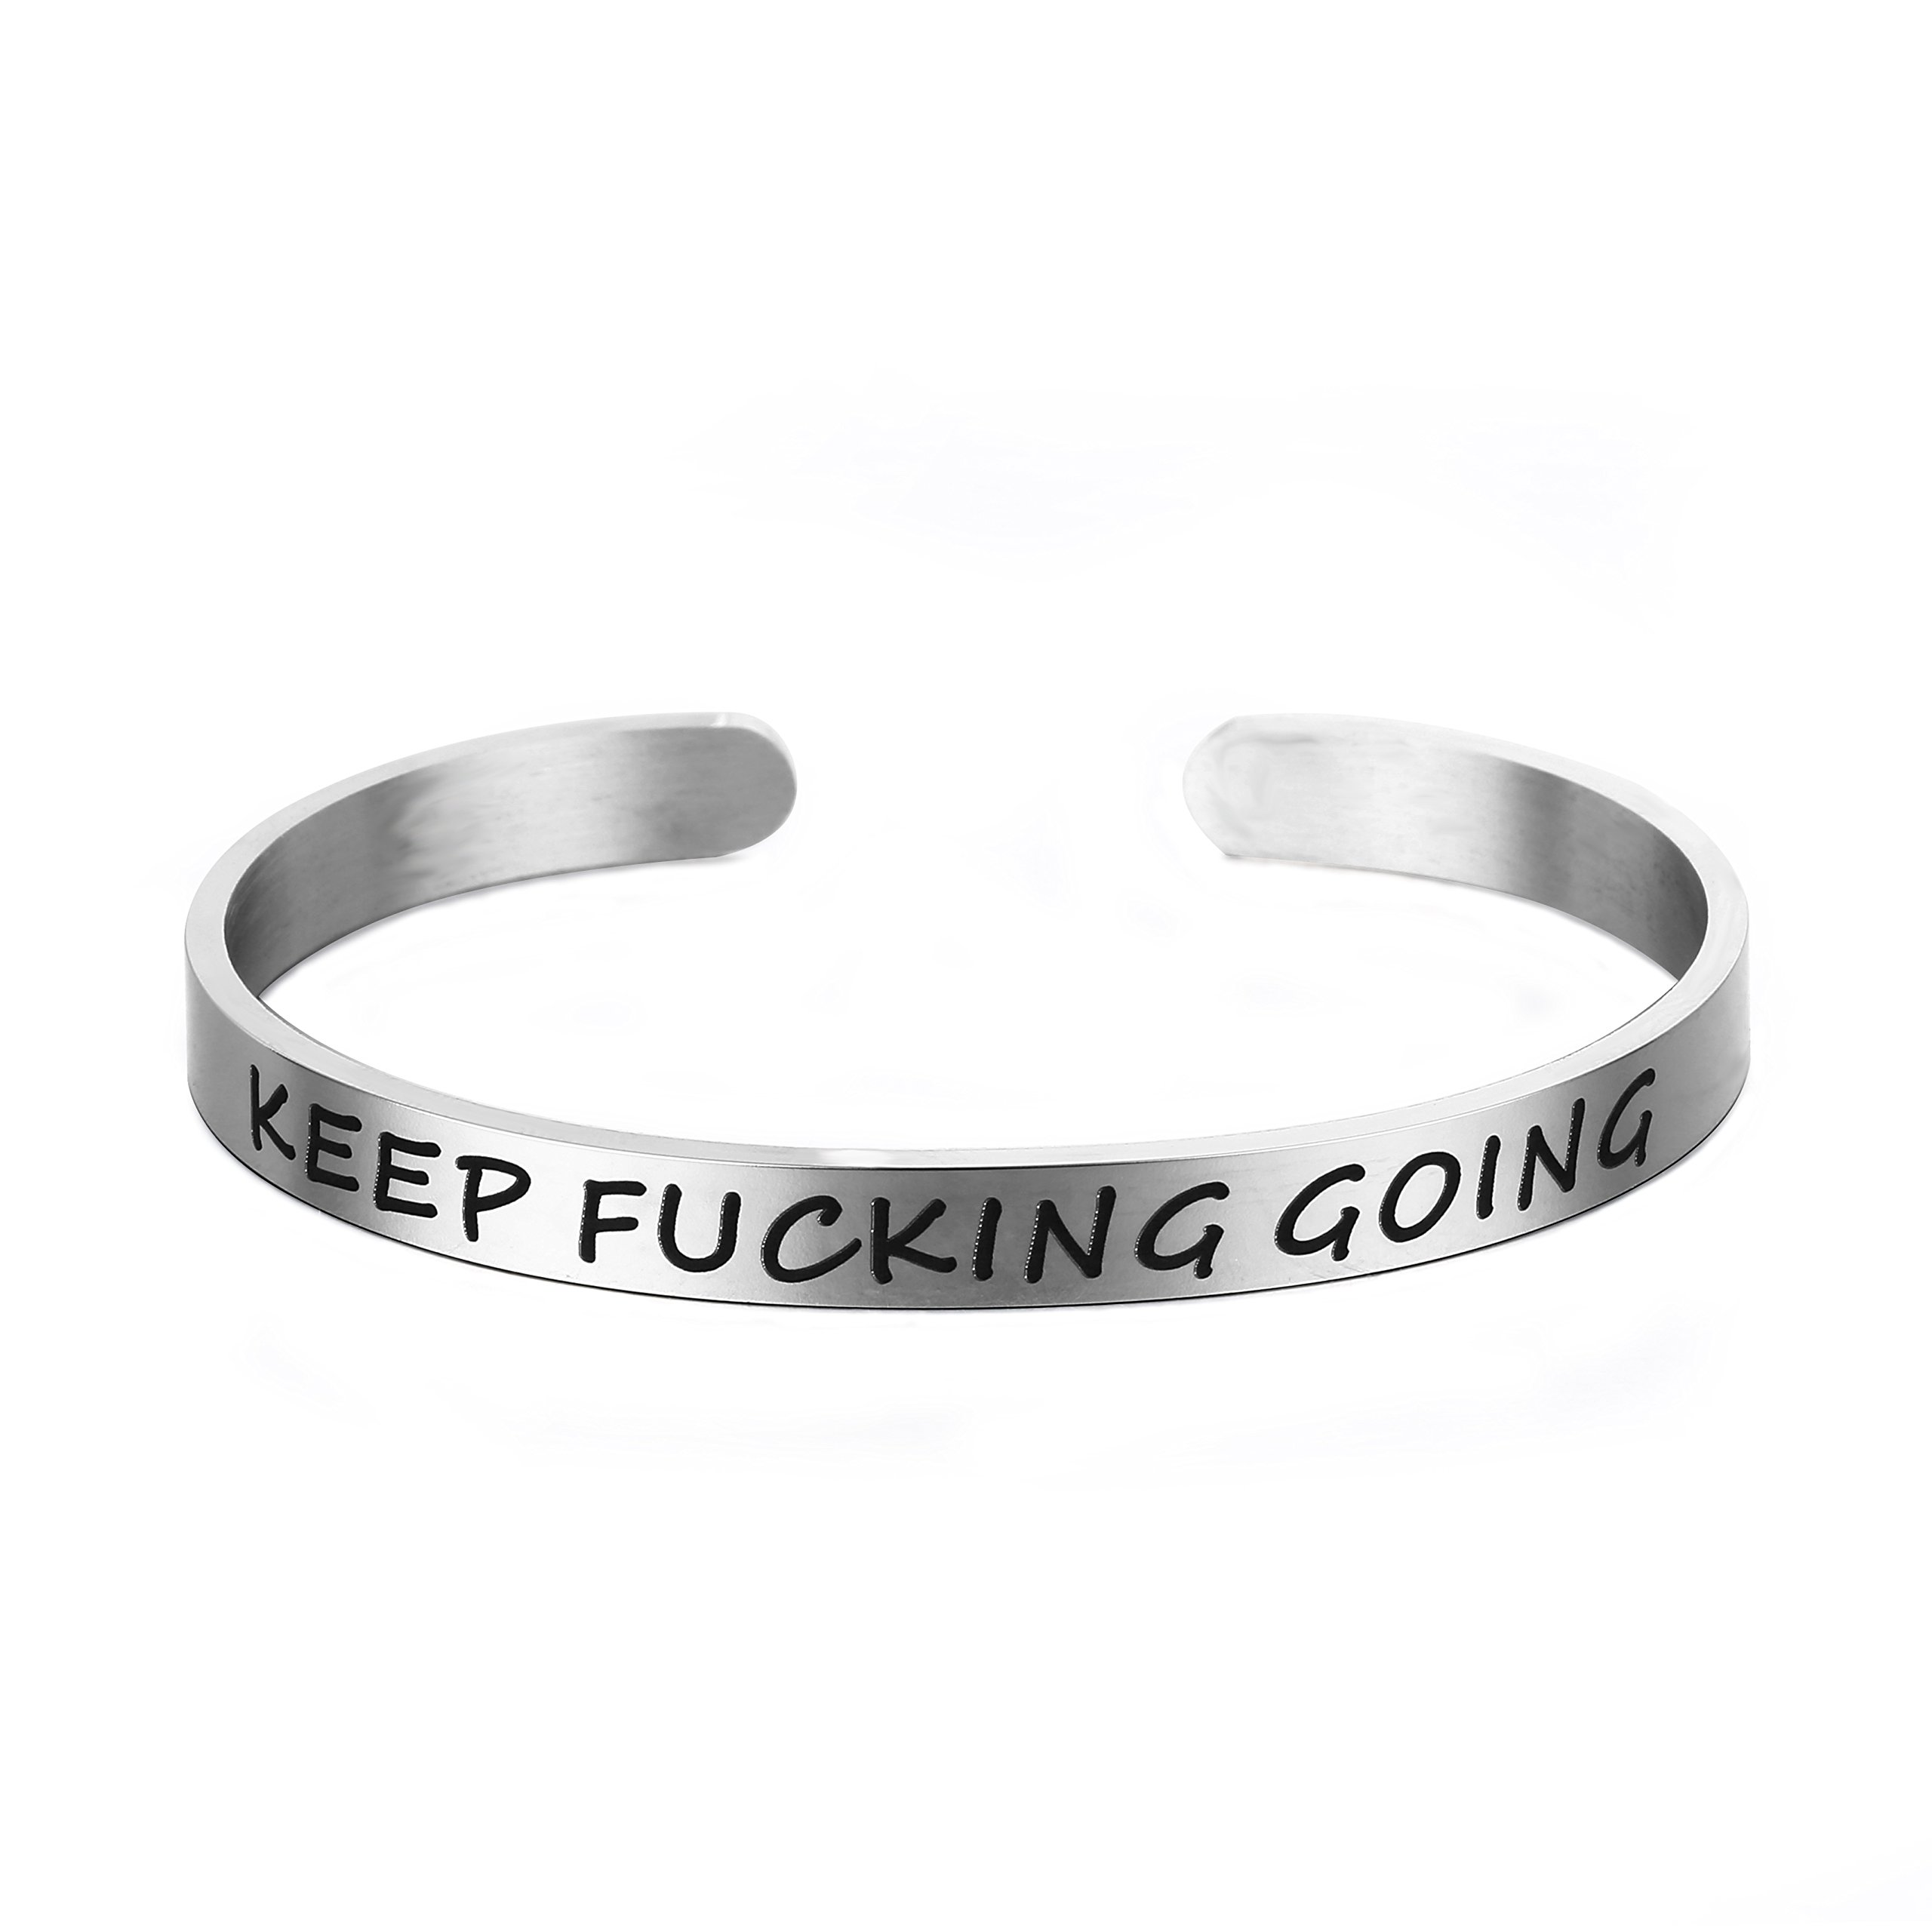 Fiery Summer Keep Fucking Going Stainless Steel Cuff Bracelet Inspirational Gifts Friends, BFF Sisters Encouragement Gift (Simple Style)